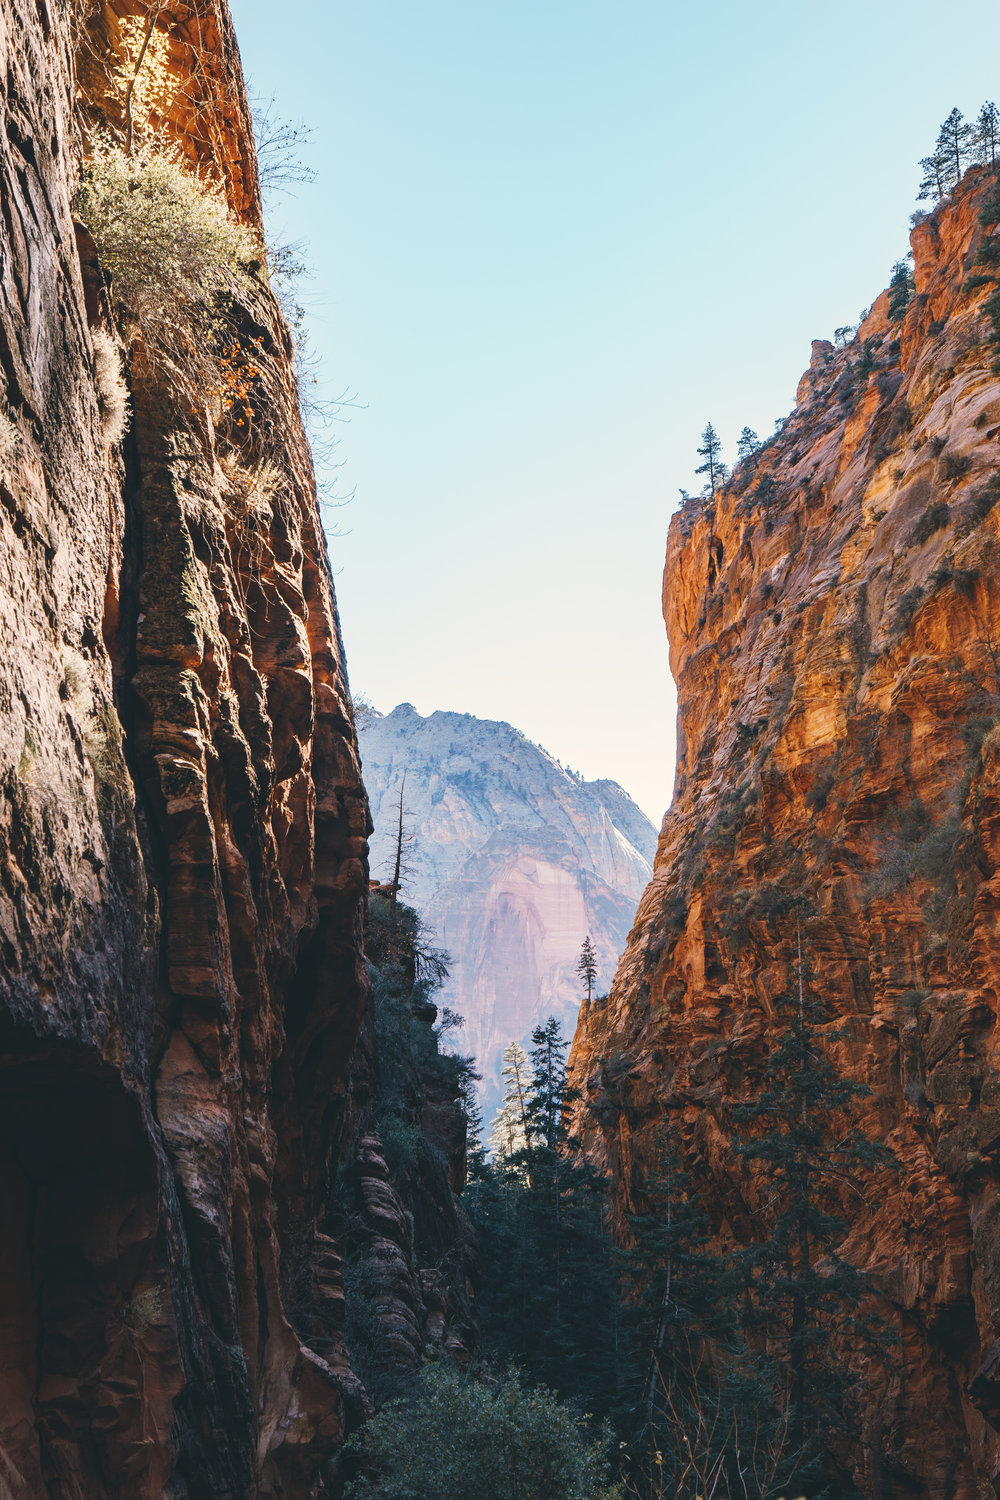 Looking back through the canyons to where we came from.